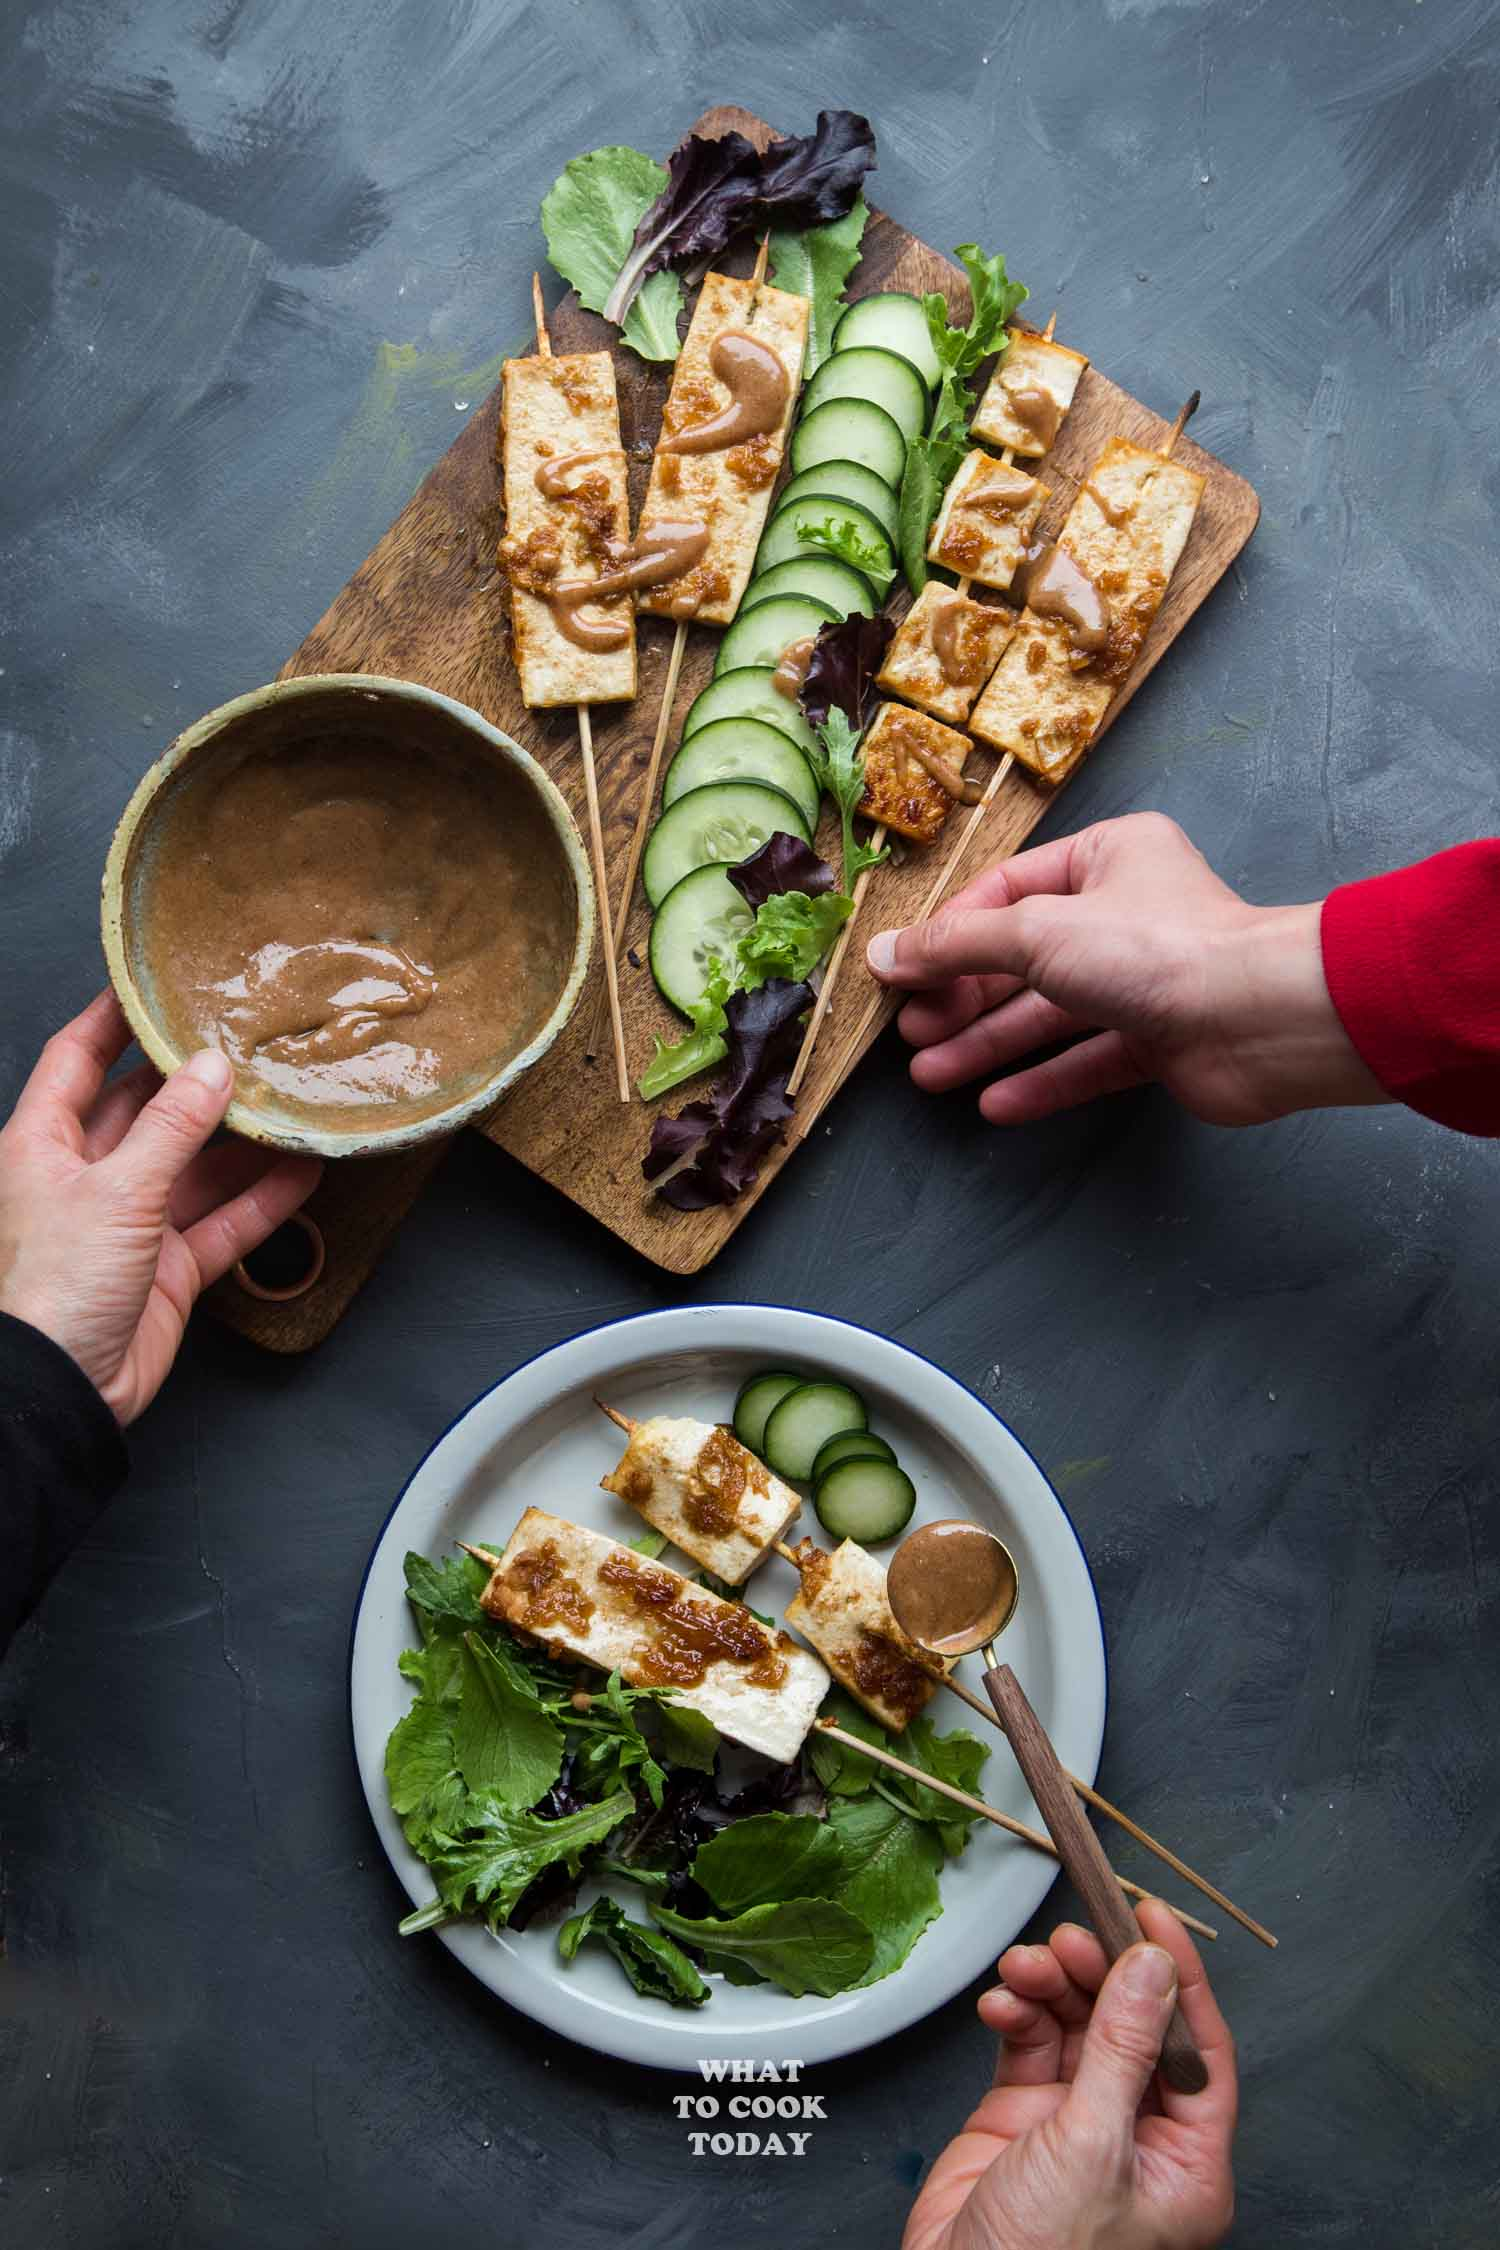 Tofu Satay with Almond Butter Sauce - Tofu is marinated in aromatic spices and serve with super easy, tasty, and creamy almond butter sauce. You will not think of tofu the same way again #ad #StartAHealthyRelationship